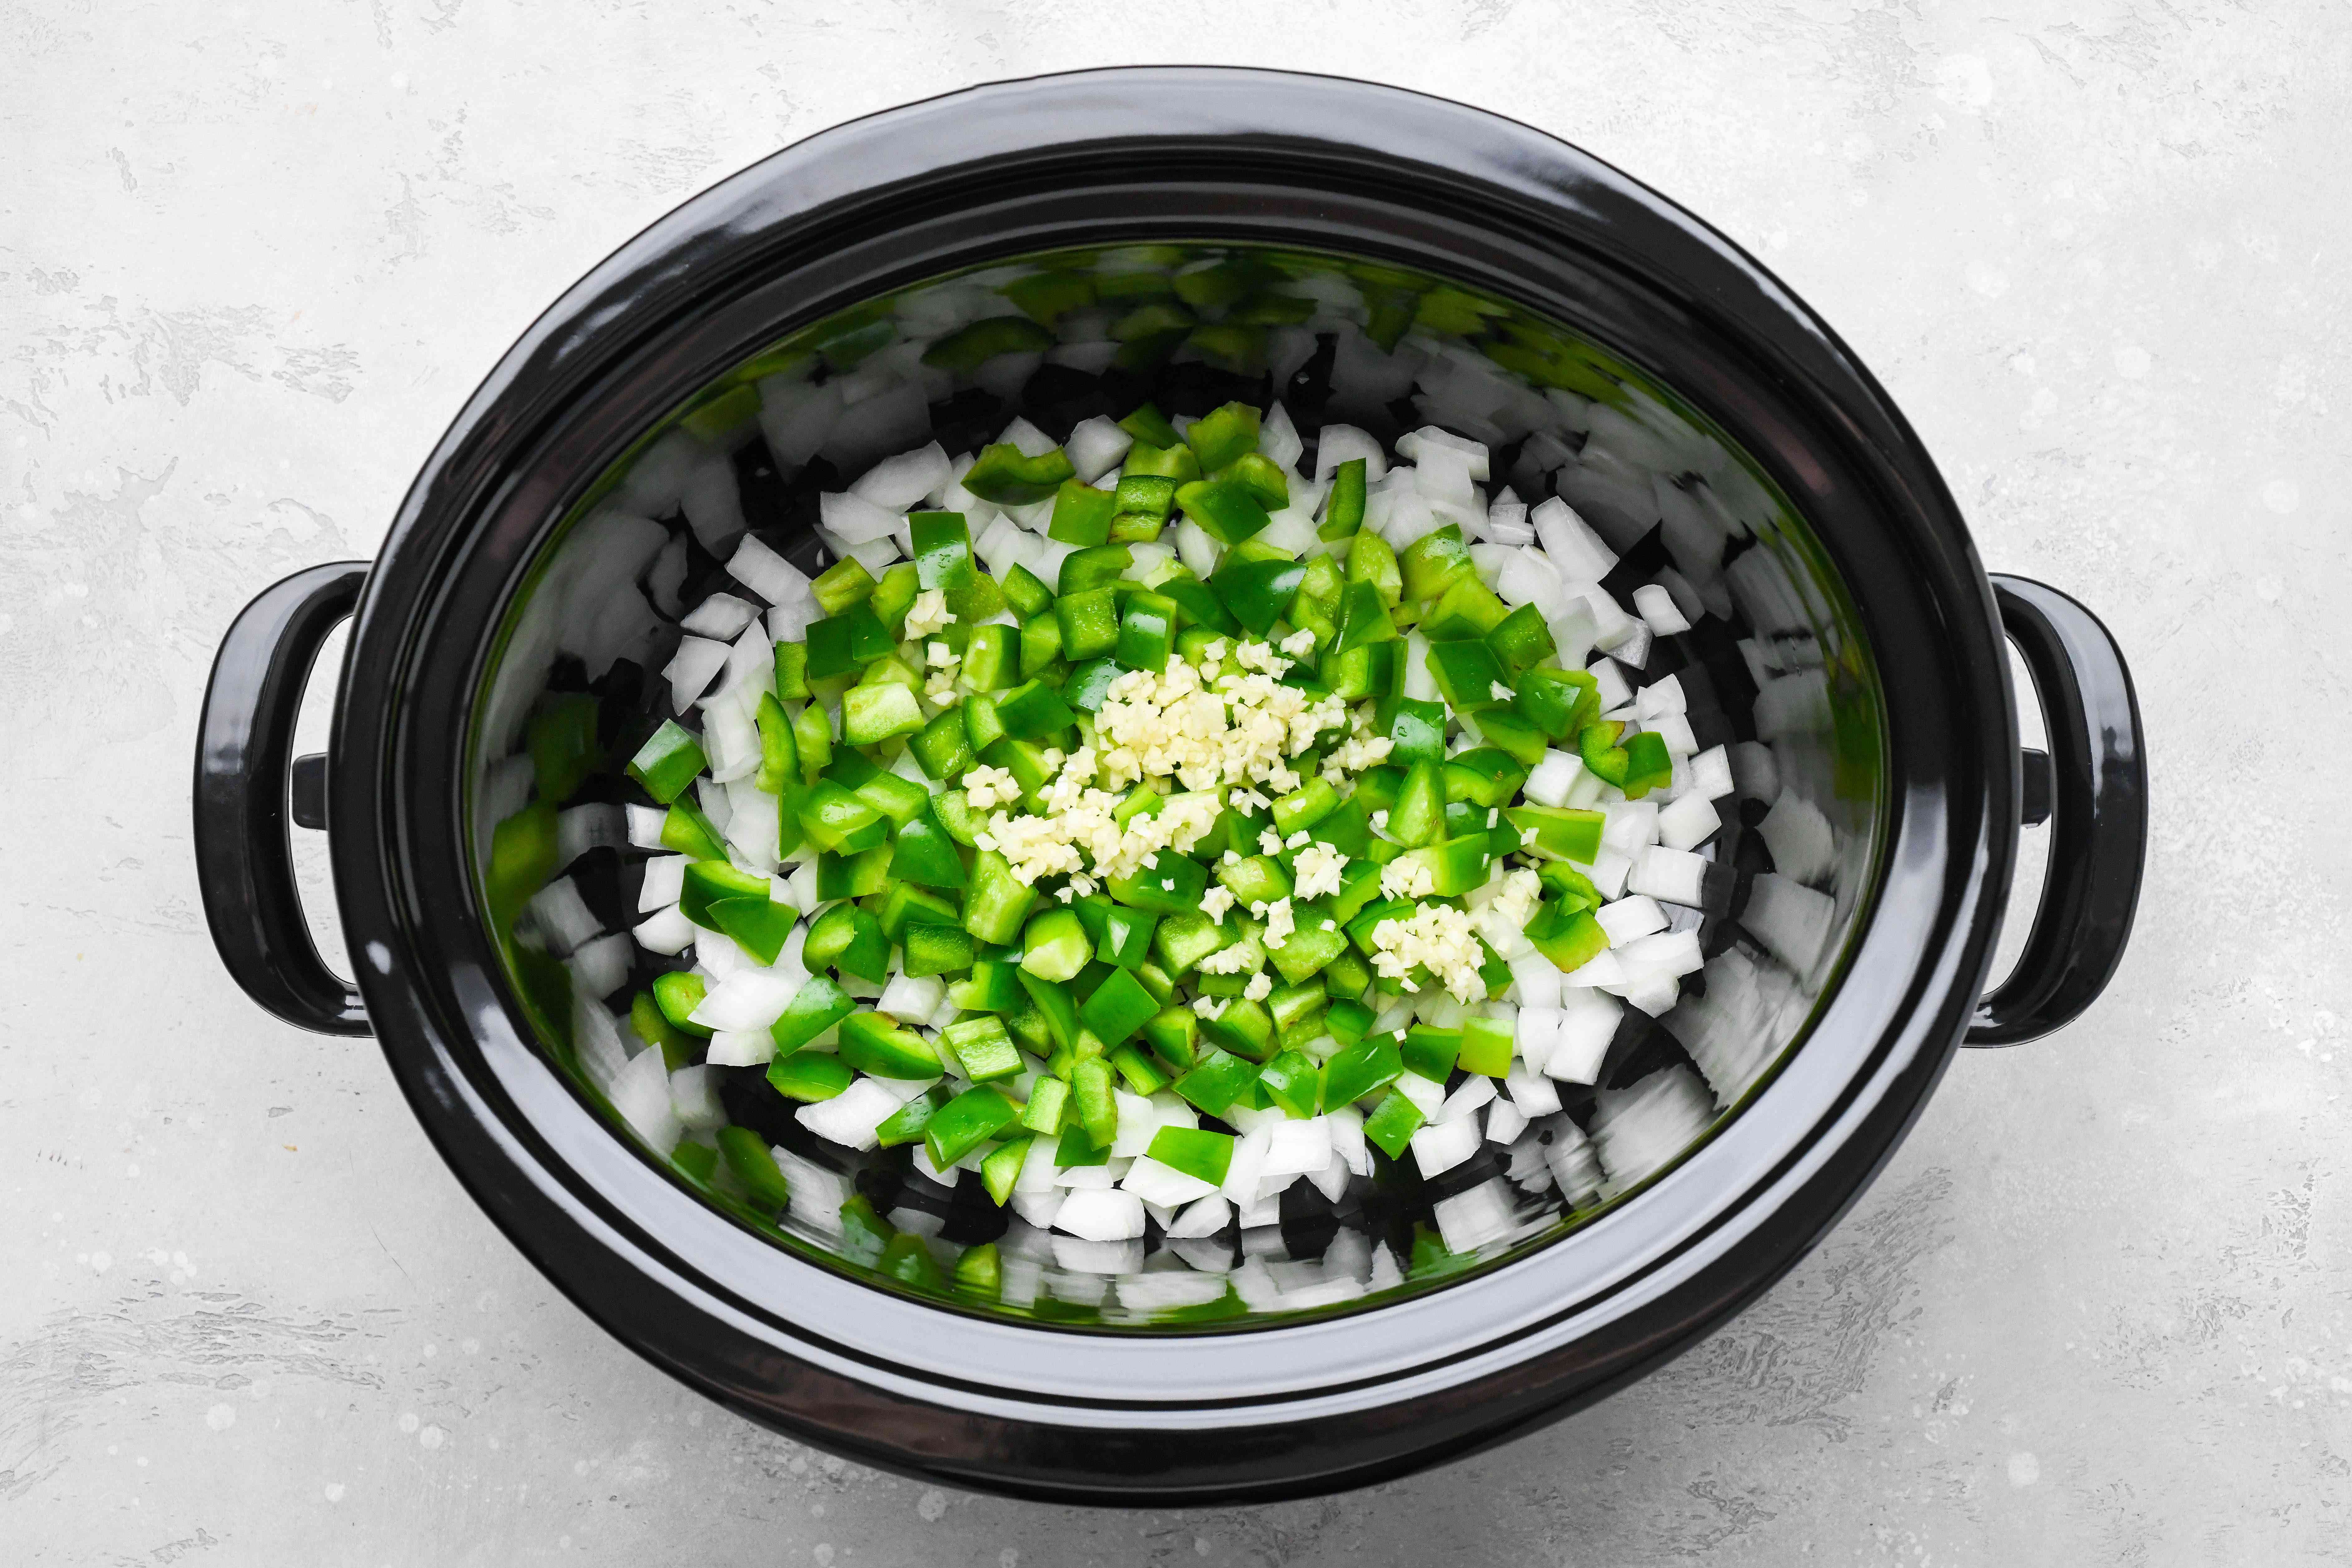 combine the onion, garlic, and the green bell pepper in a slow cooker